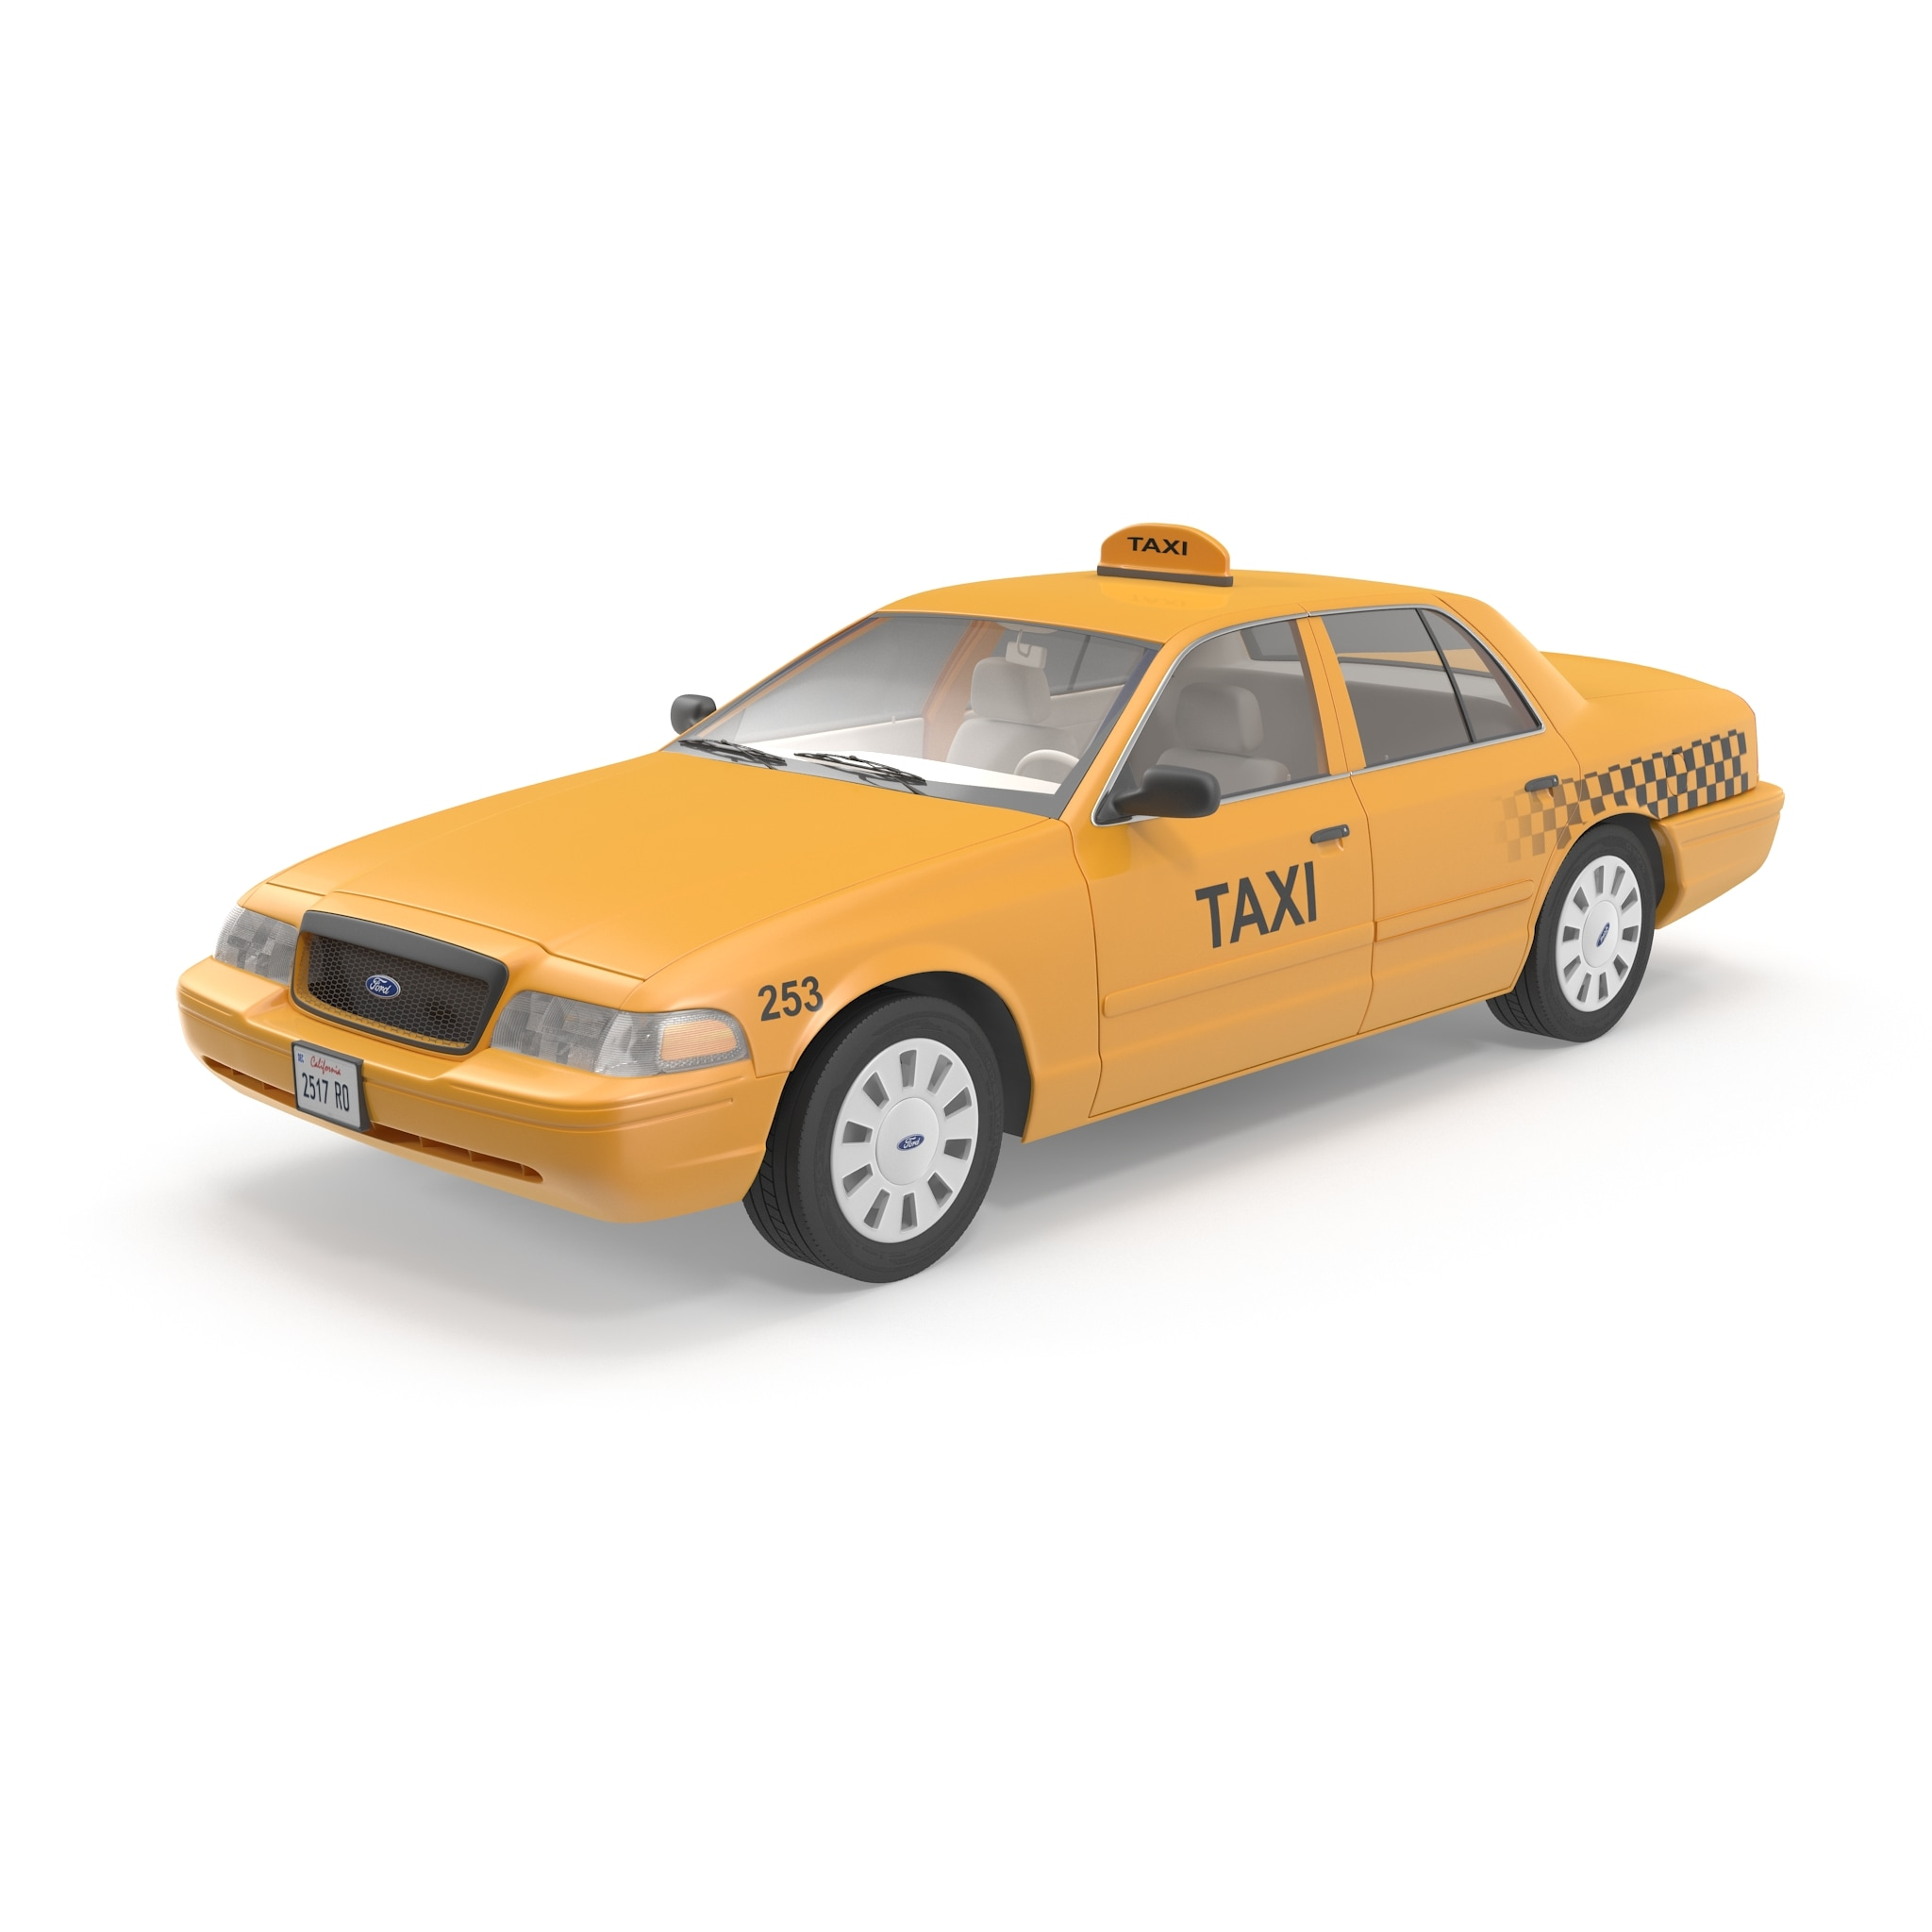 Image gallery taxi model for Ford models nyc